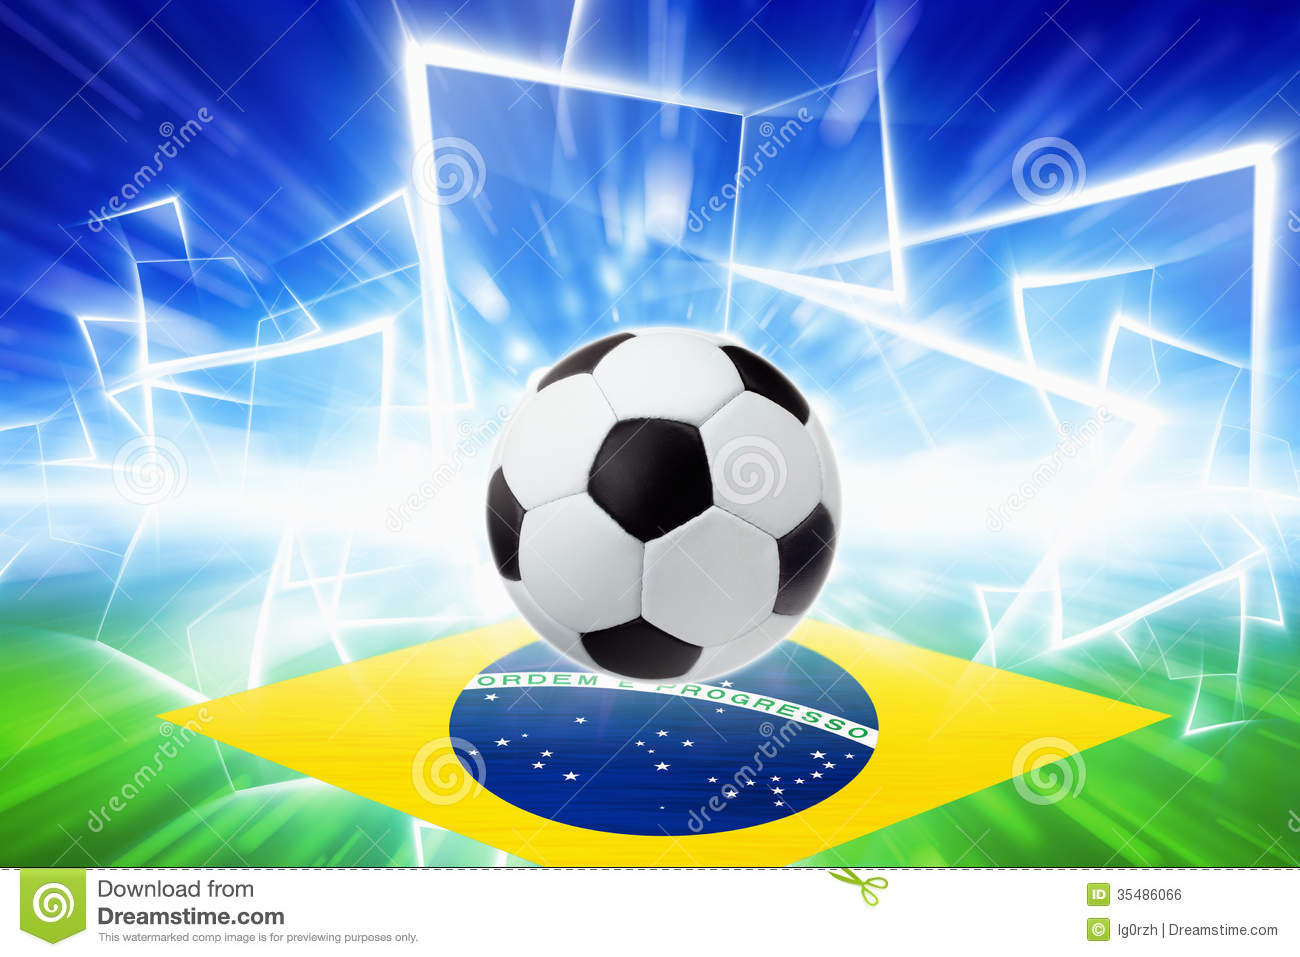 Abstract Sports Background Royalty Free Stock Image: Soccer Ball, Brazil Flag Royalty Free Stock Image